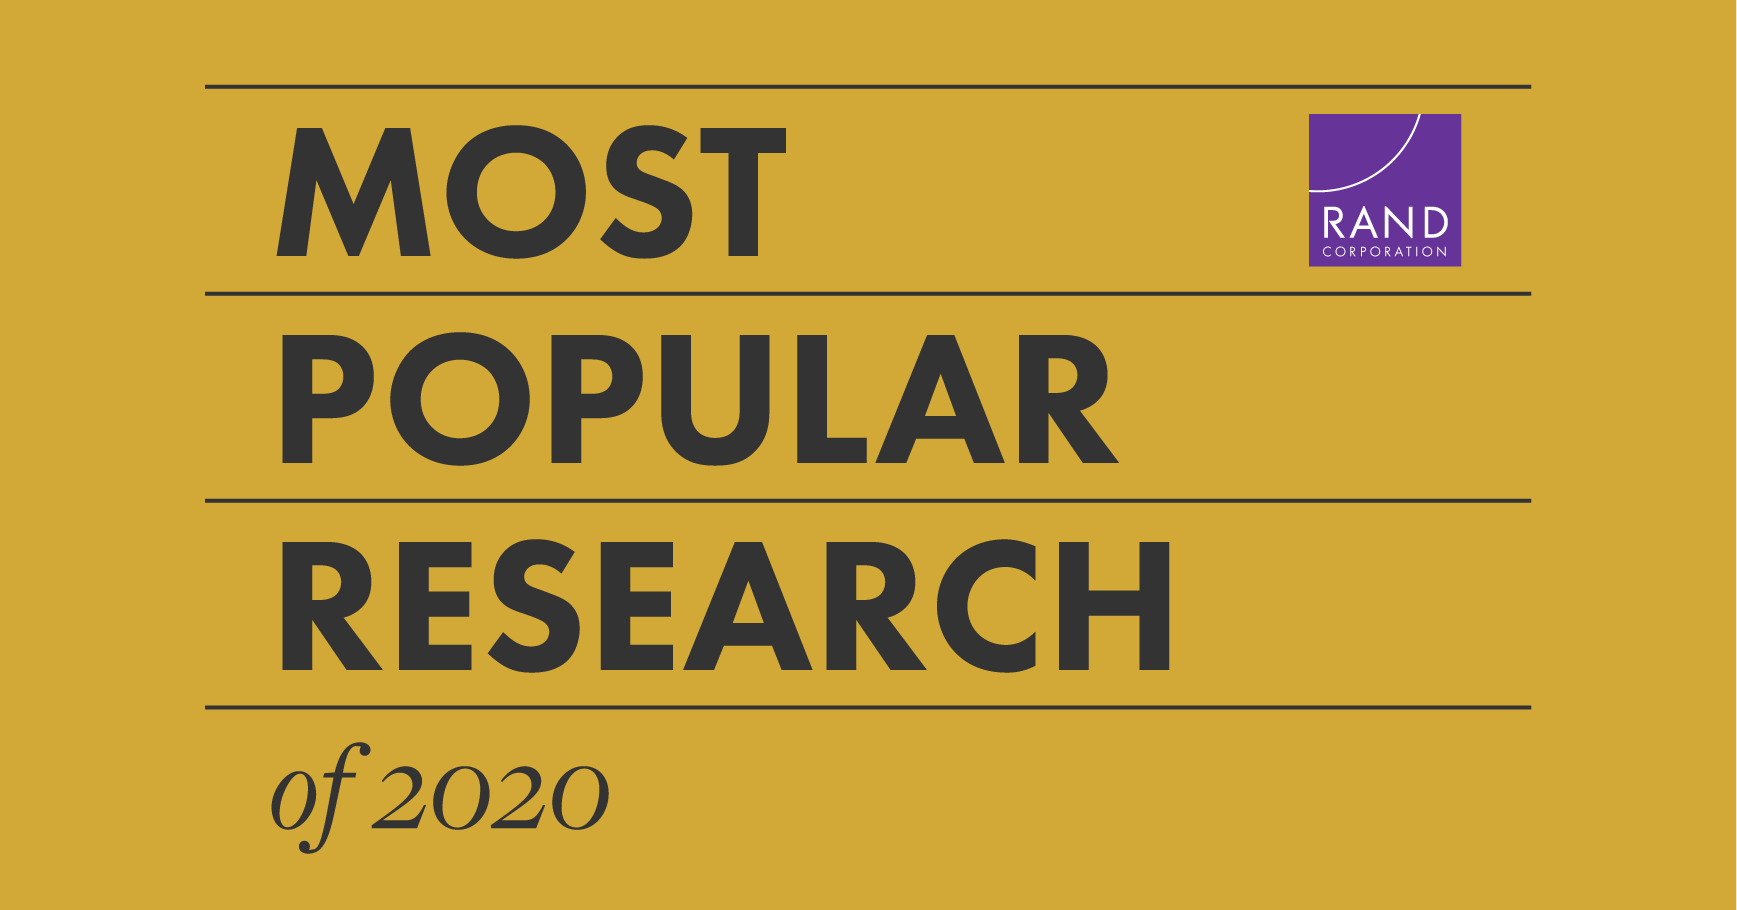 Most popular RAND research of 2020. Image by RAND Corporation